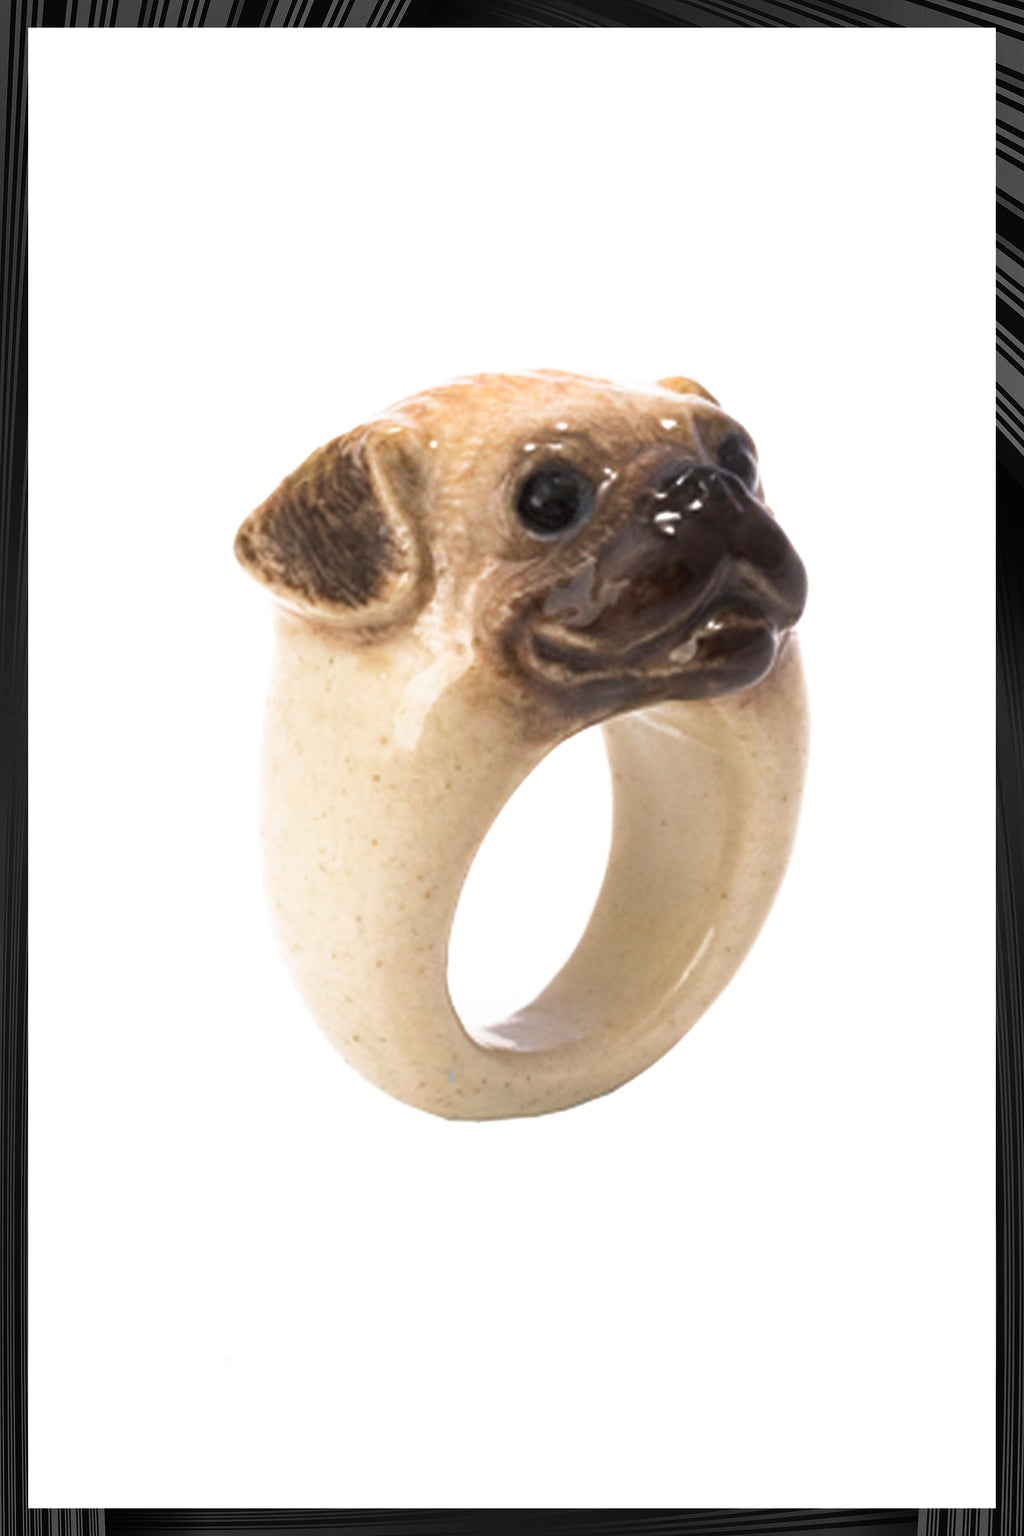 Pug Dog Ring | Free Delivery - Quick Shipping